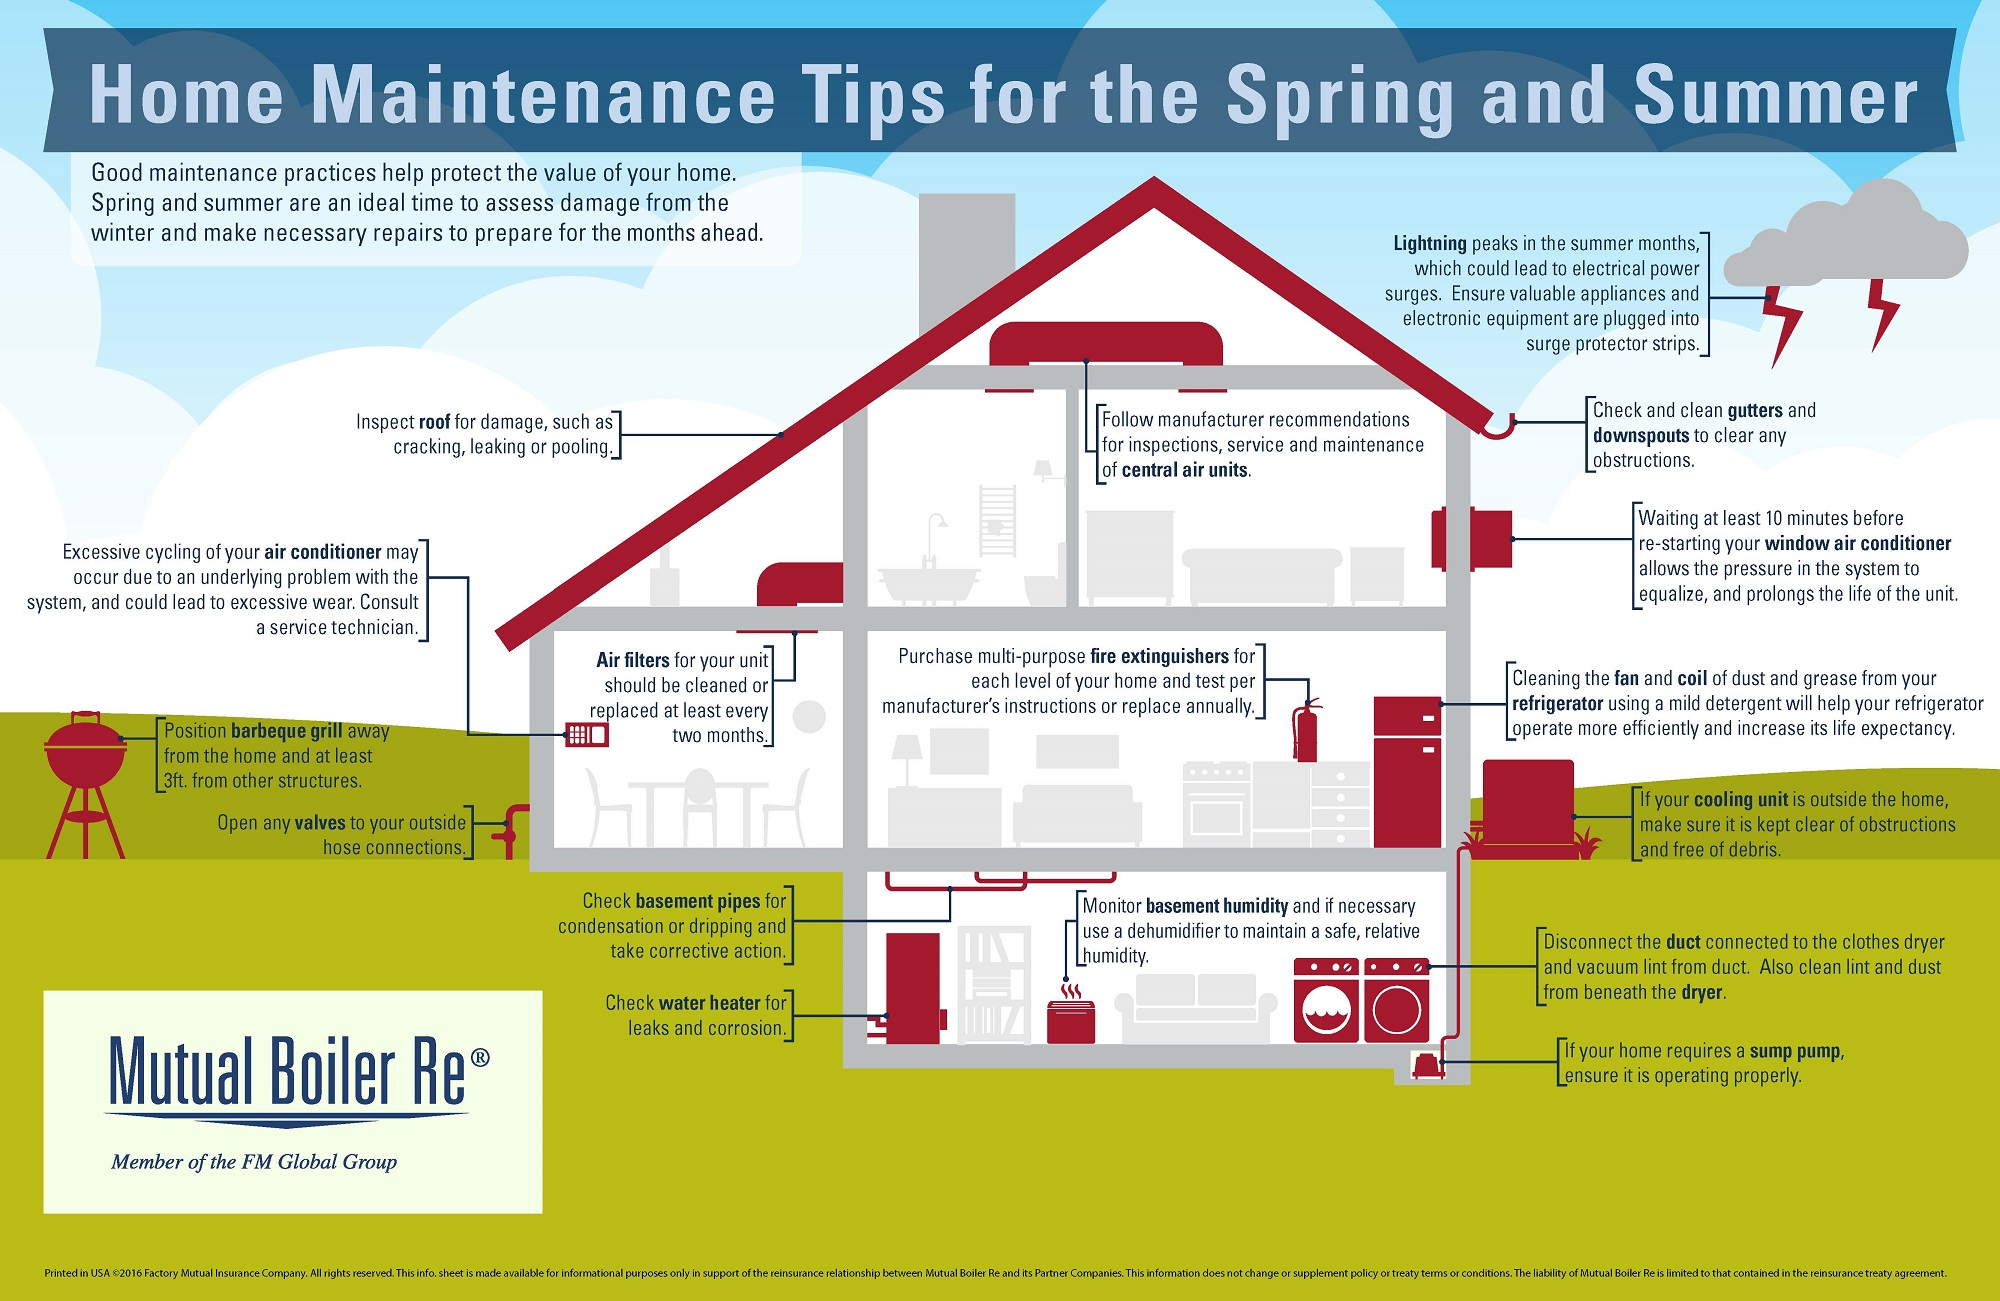 Home Maintenance Tips on home repair tips, home inspection tips, home repair help, home storage tips, home buying tips, home security tips, home management tips, home recycling tips, home cleaning tips, home marketing tips, home remodeling tips, home safety tips, home improvement, home selling tips, real estate tips, home energy tips, tips for selling your home, home heating tips, photography tips, home fix-it tips, home care tips, home decor tips, home insurance tips, home protection tips, home design tips,